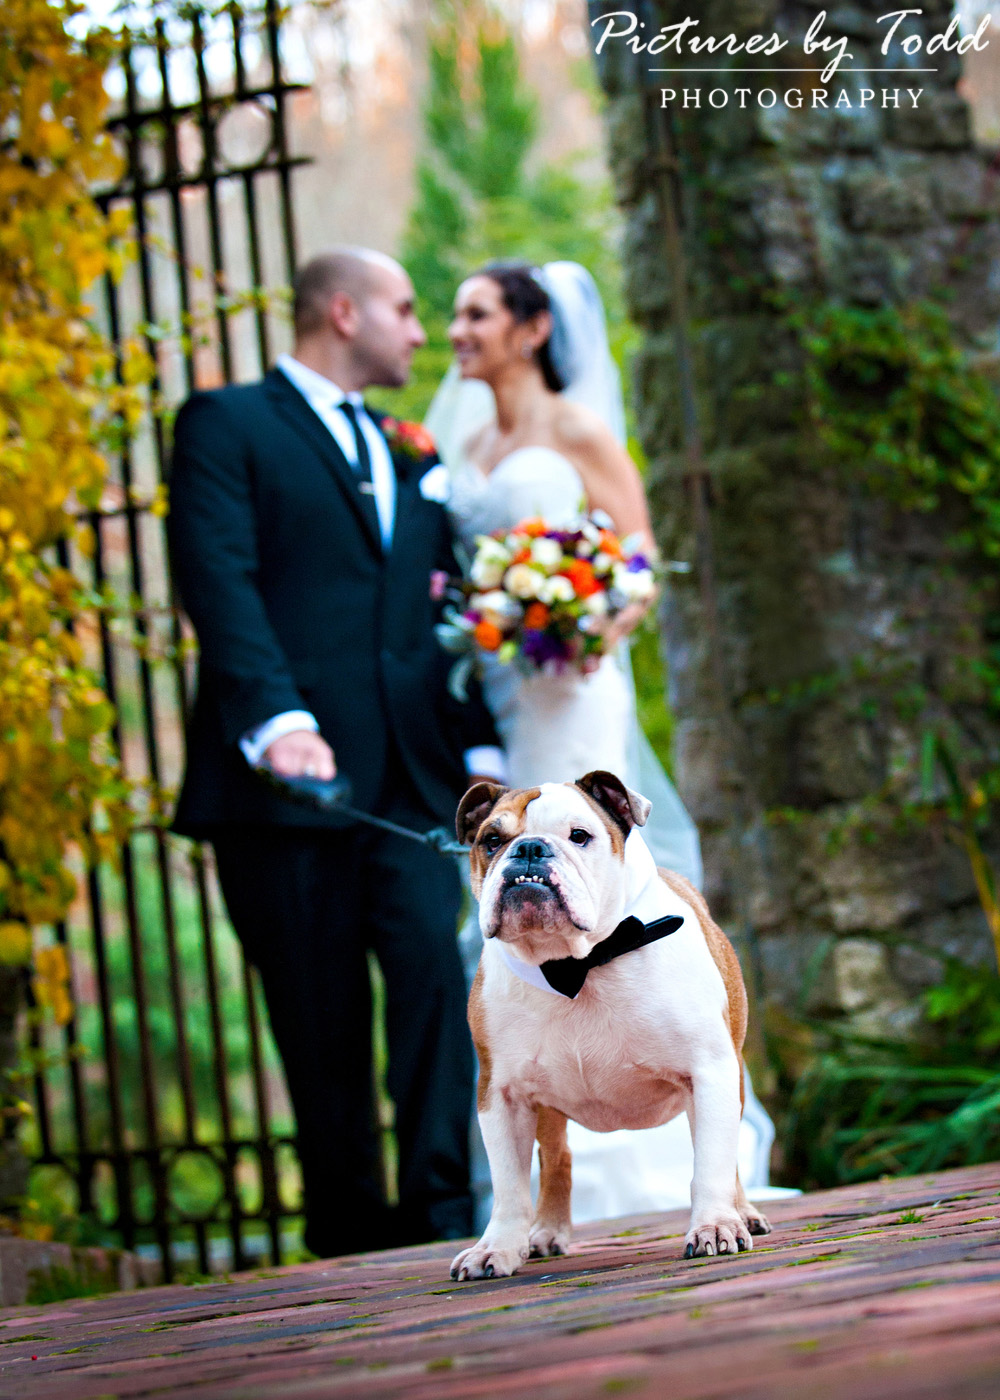 Including your dog in your Wedding | Wedding Ideas